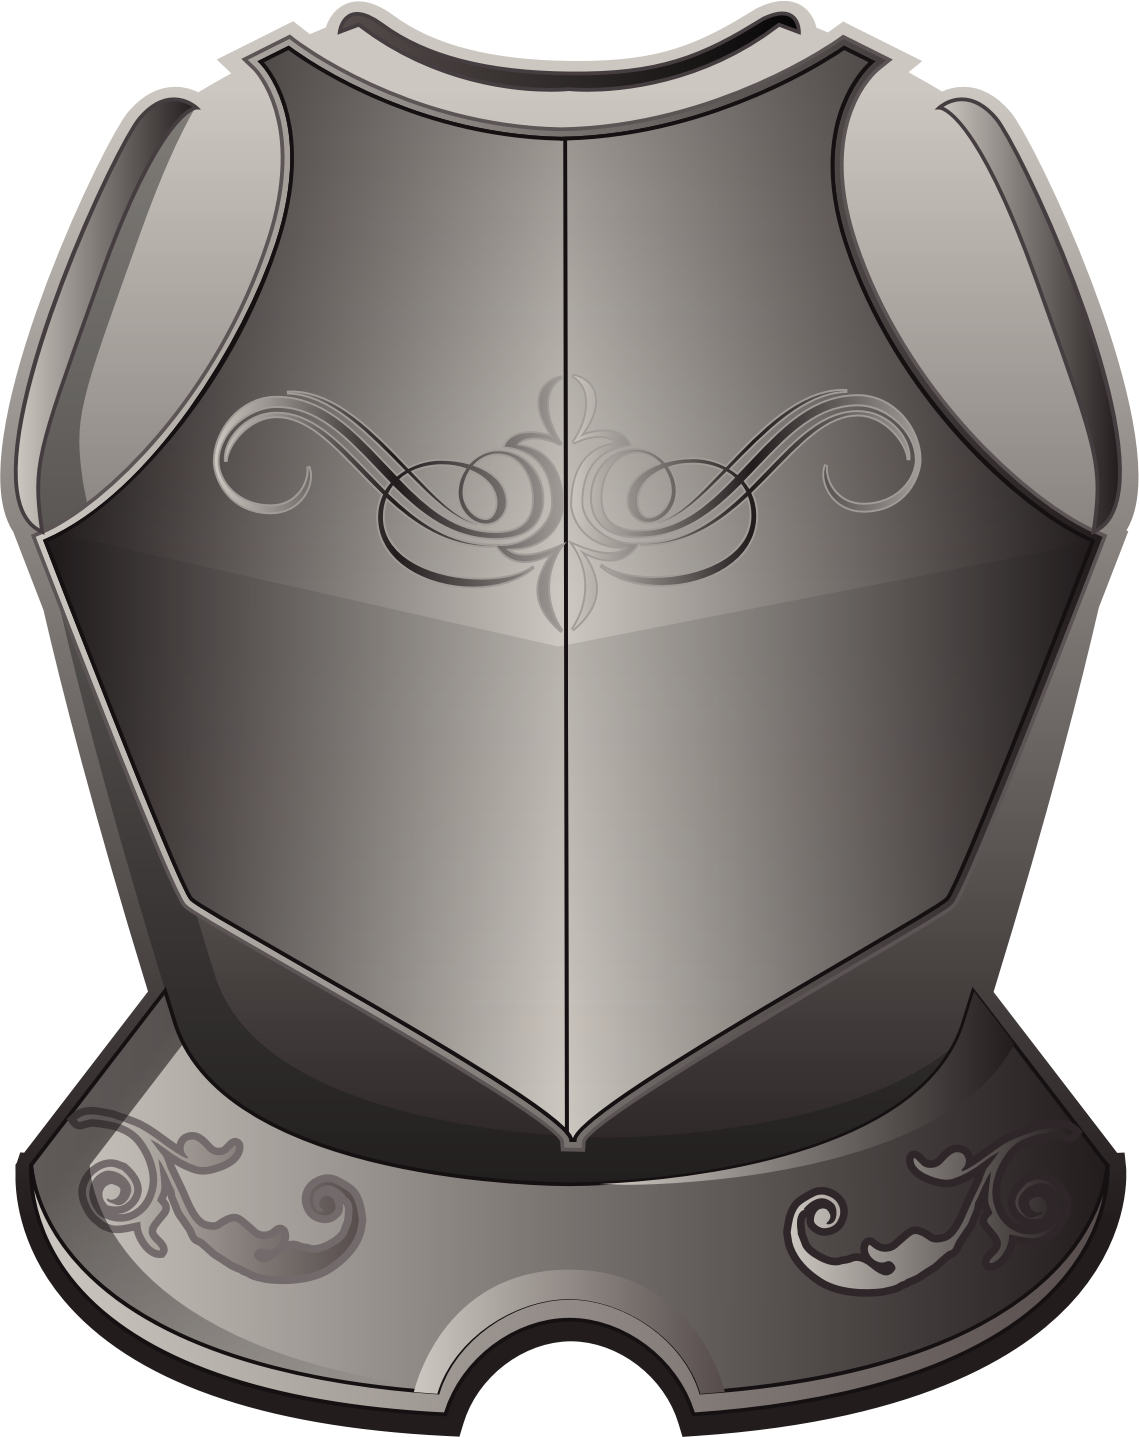 Warrior clipart armour shield. Armor image group raseone